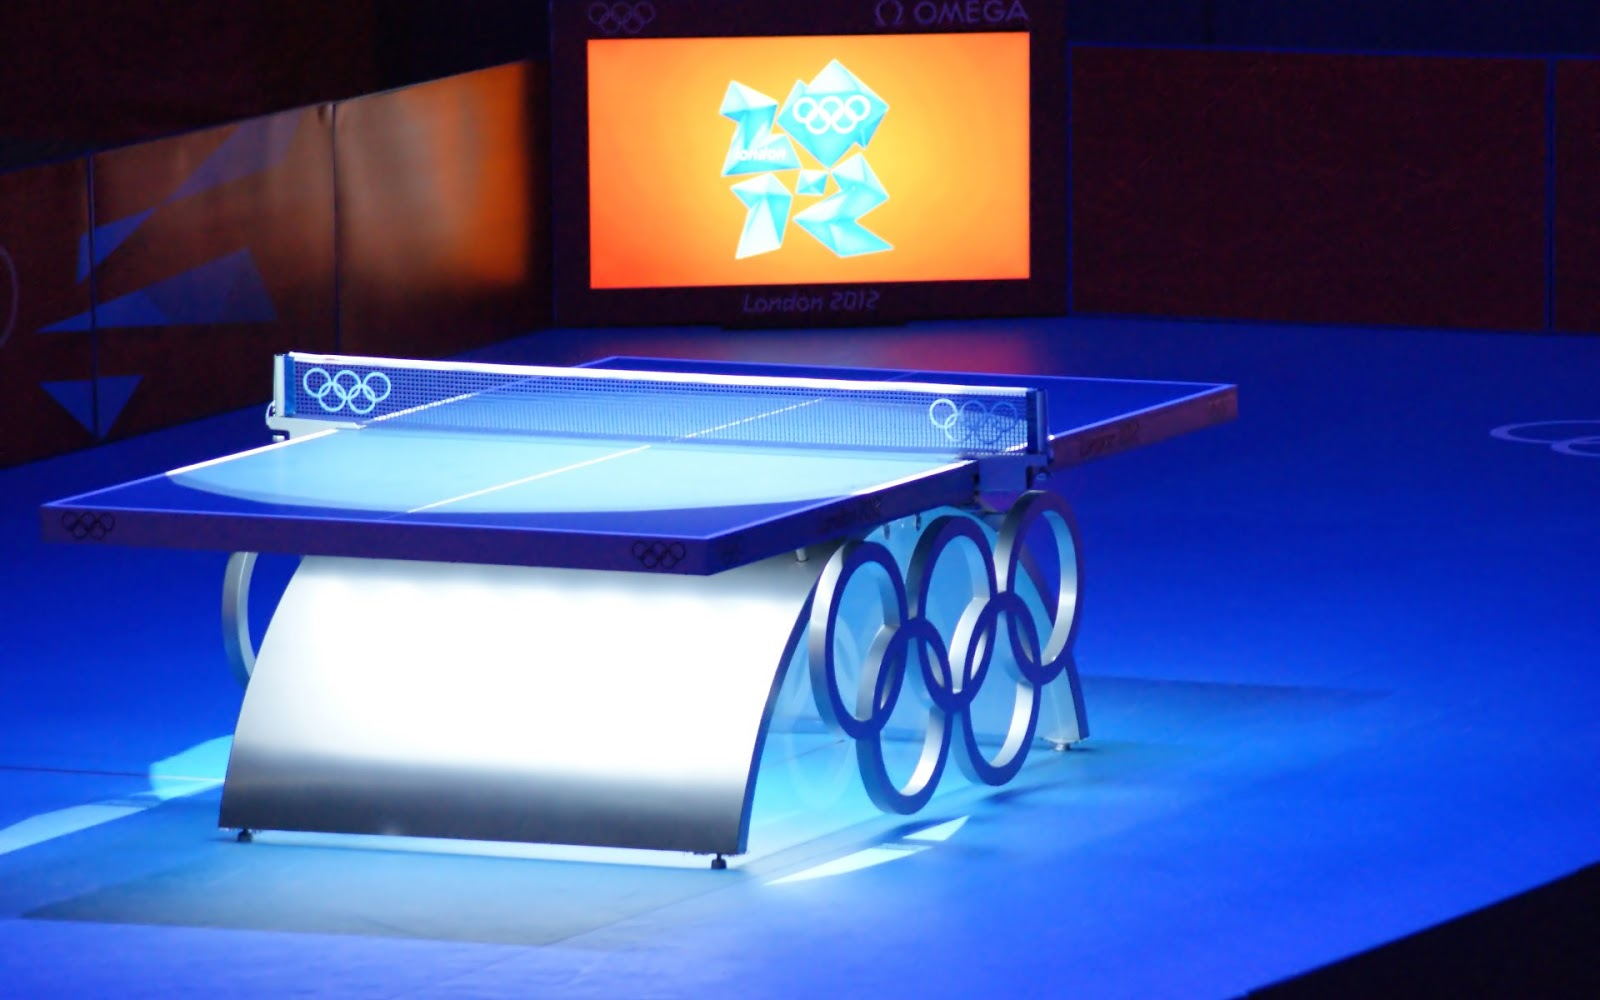 Pictures London 2012 Table Tennis 1920x1200 Widescreen Wallpapers 1600x1000